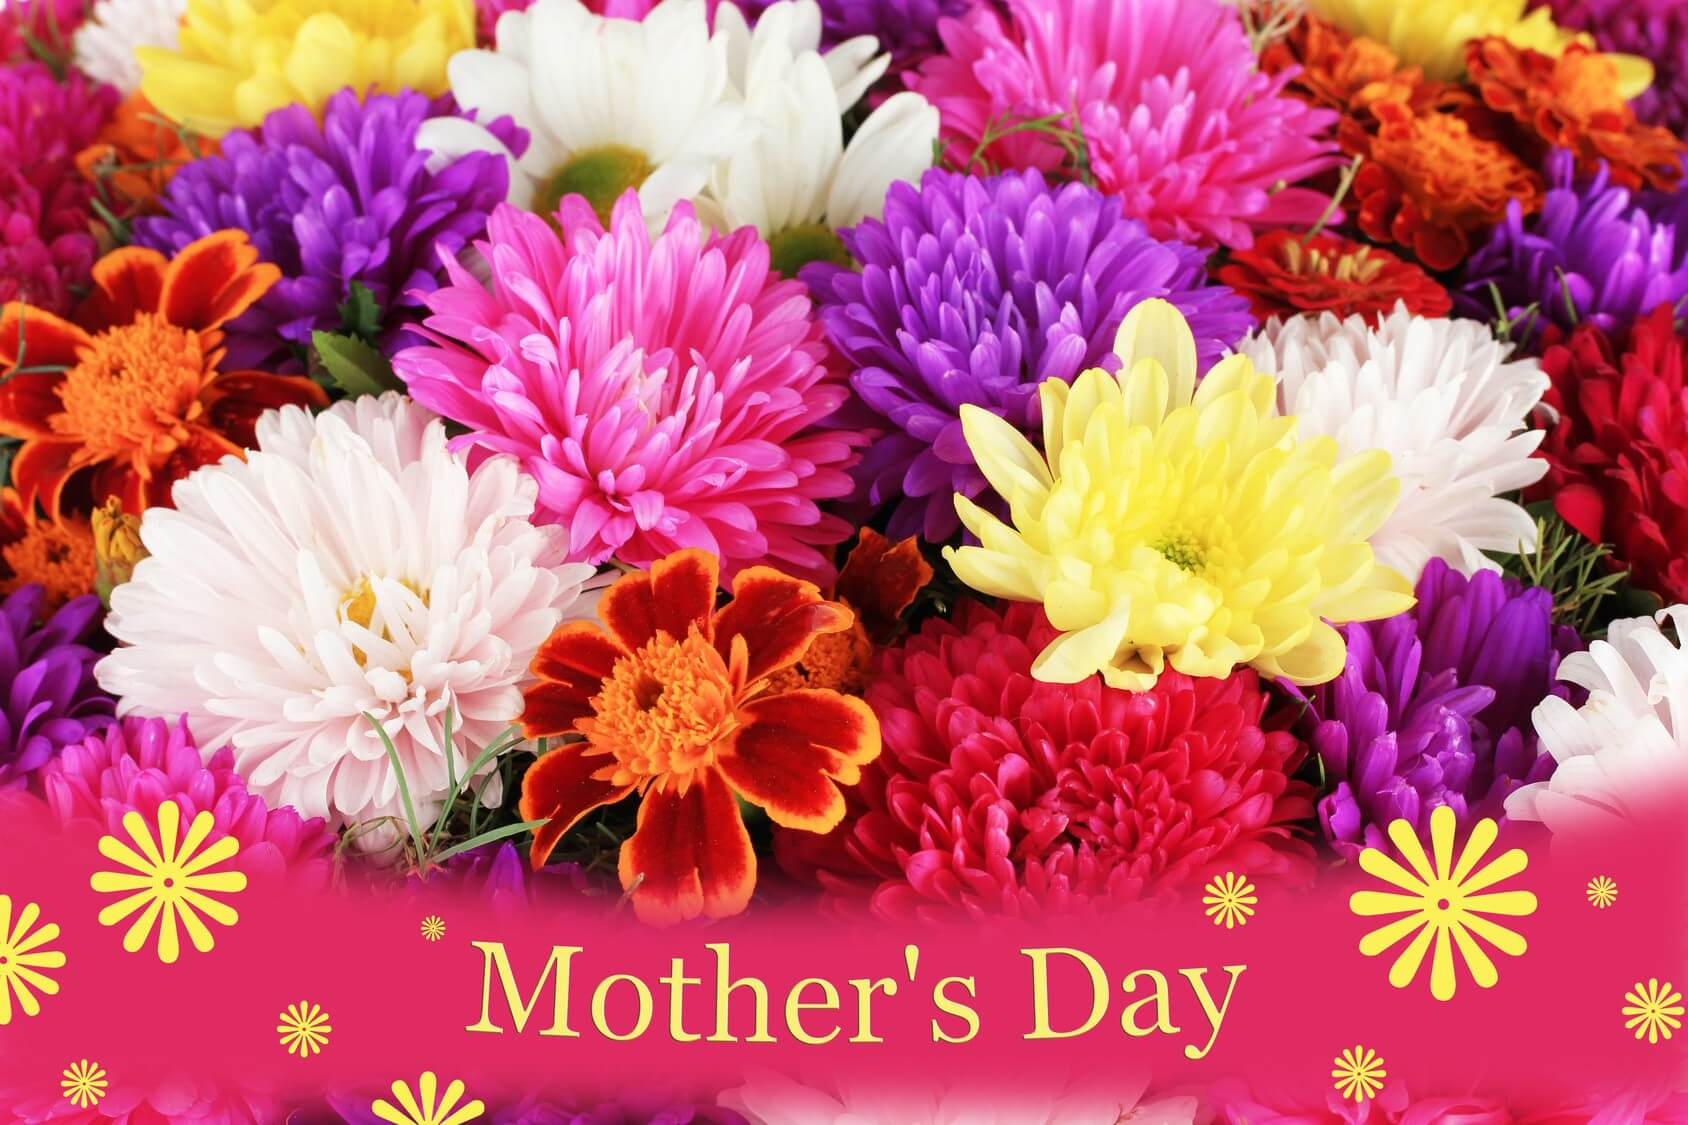 happy mothers day wishes greetings hd image wallpaper